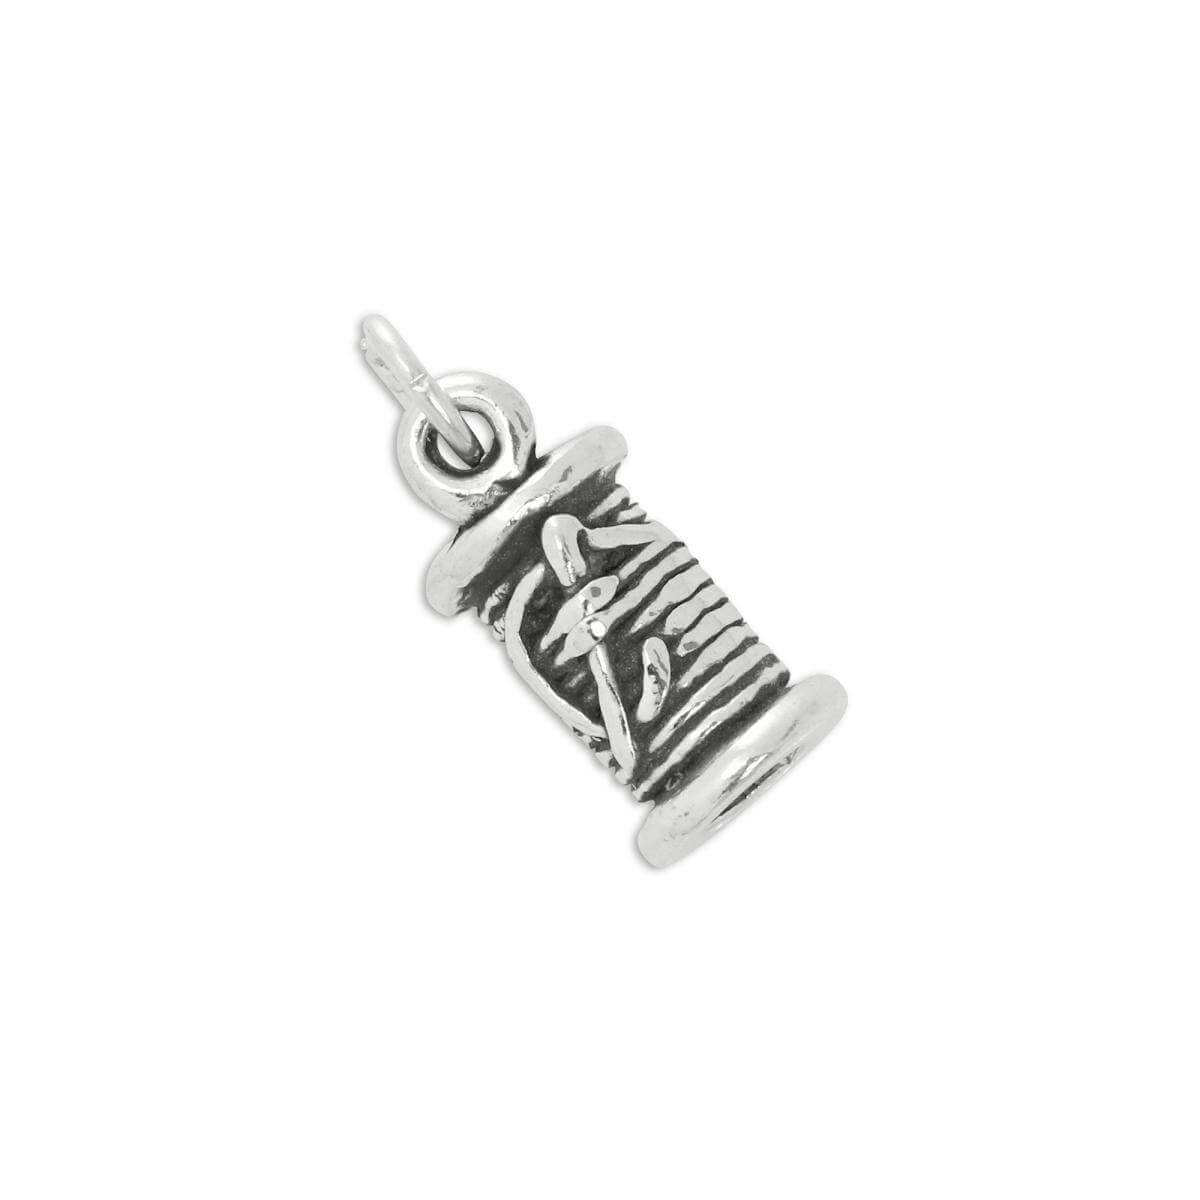 Sterling Silver Spool of Thread With Needle Charm